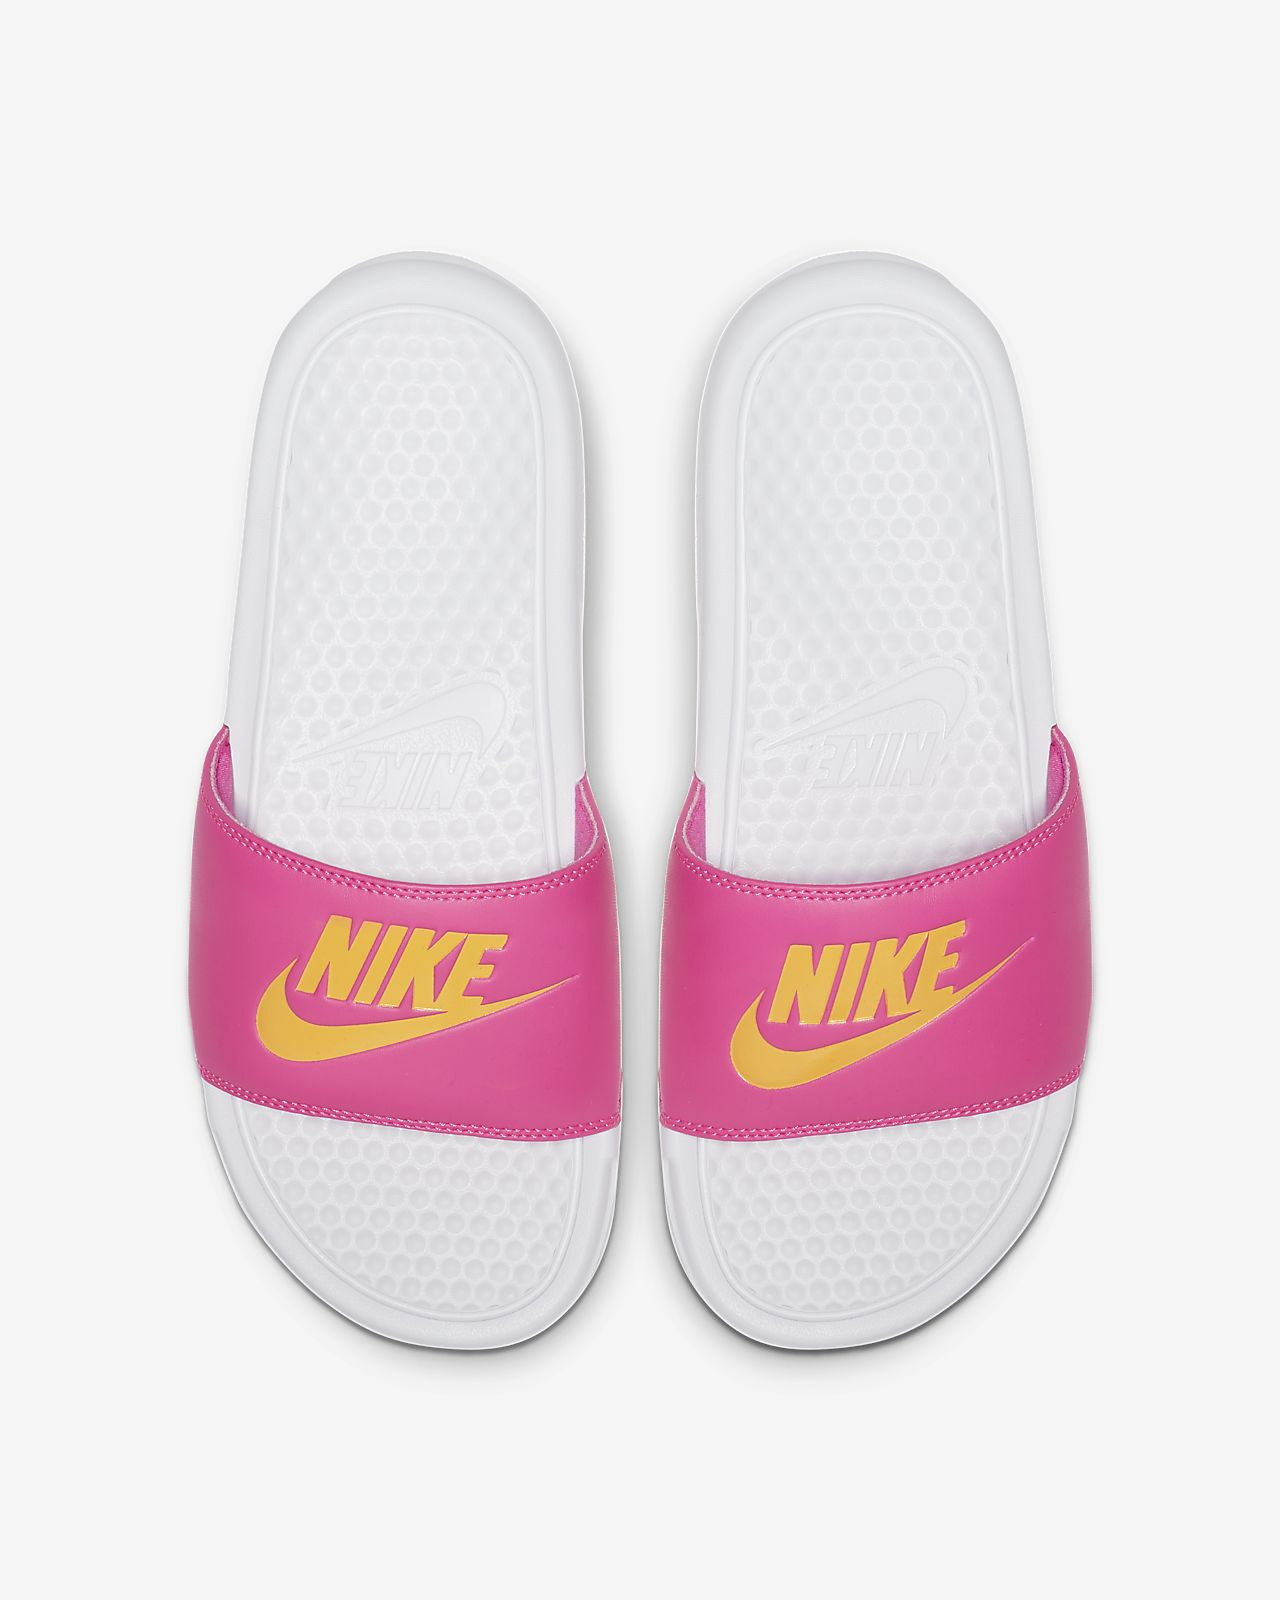 782cba31c007 Low Resolution Nike Benassi Women s Slide Nike Benassi Women s Slide